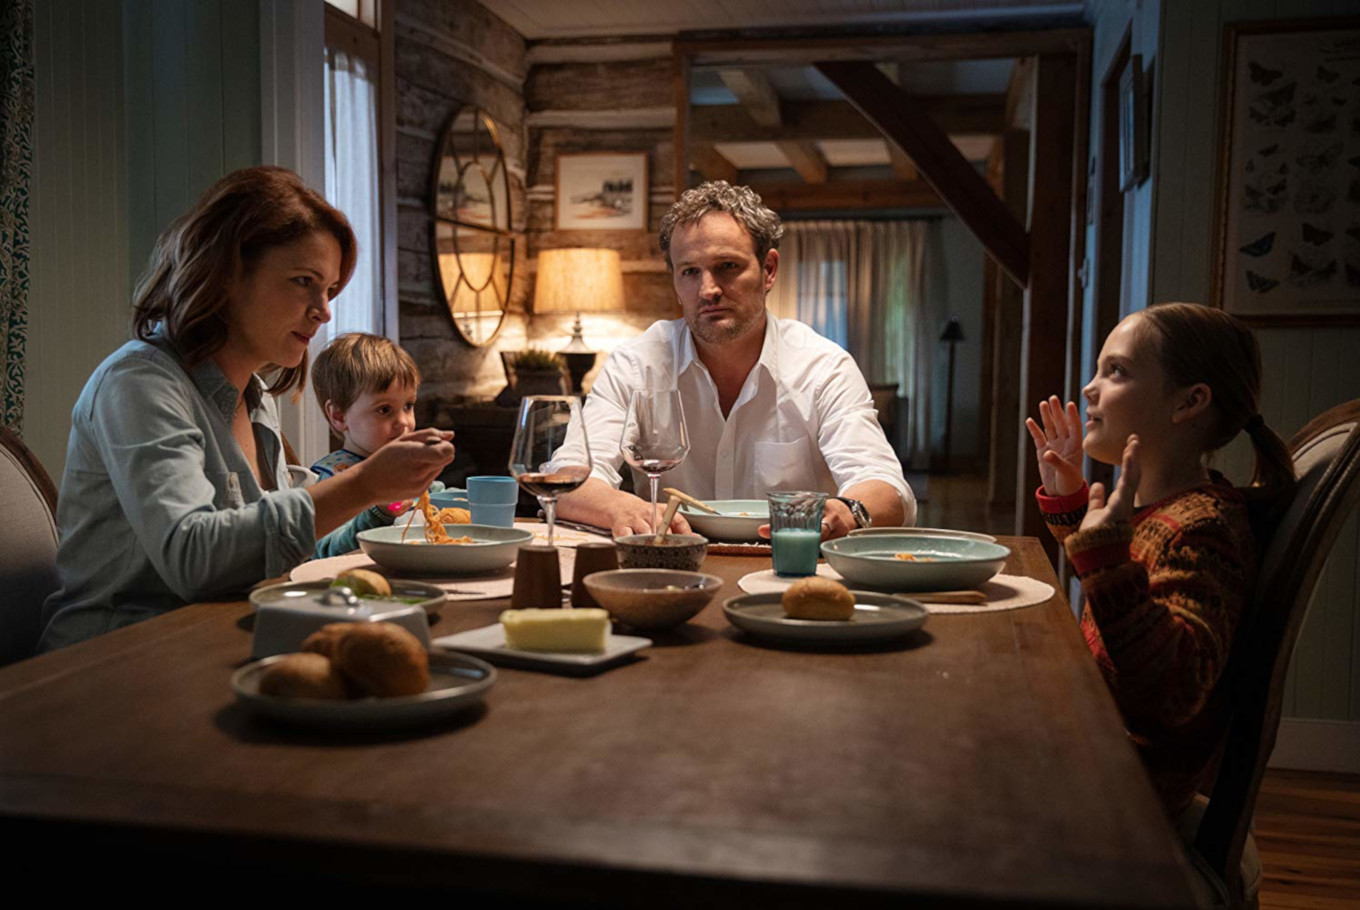 The Creed family life in its normal moments - (l to r) Rachel (Amy Seimetz), Gage (Hugo Lavoie & Lucas Lavoie), Louis (Jason Clarke) and Ellie (Jeté Laurence) in Pet Sematary (2019)